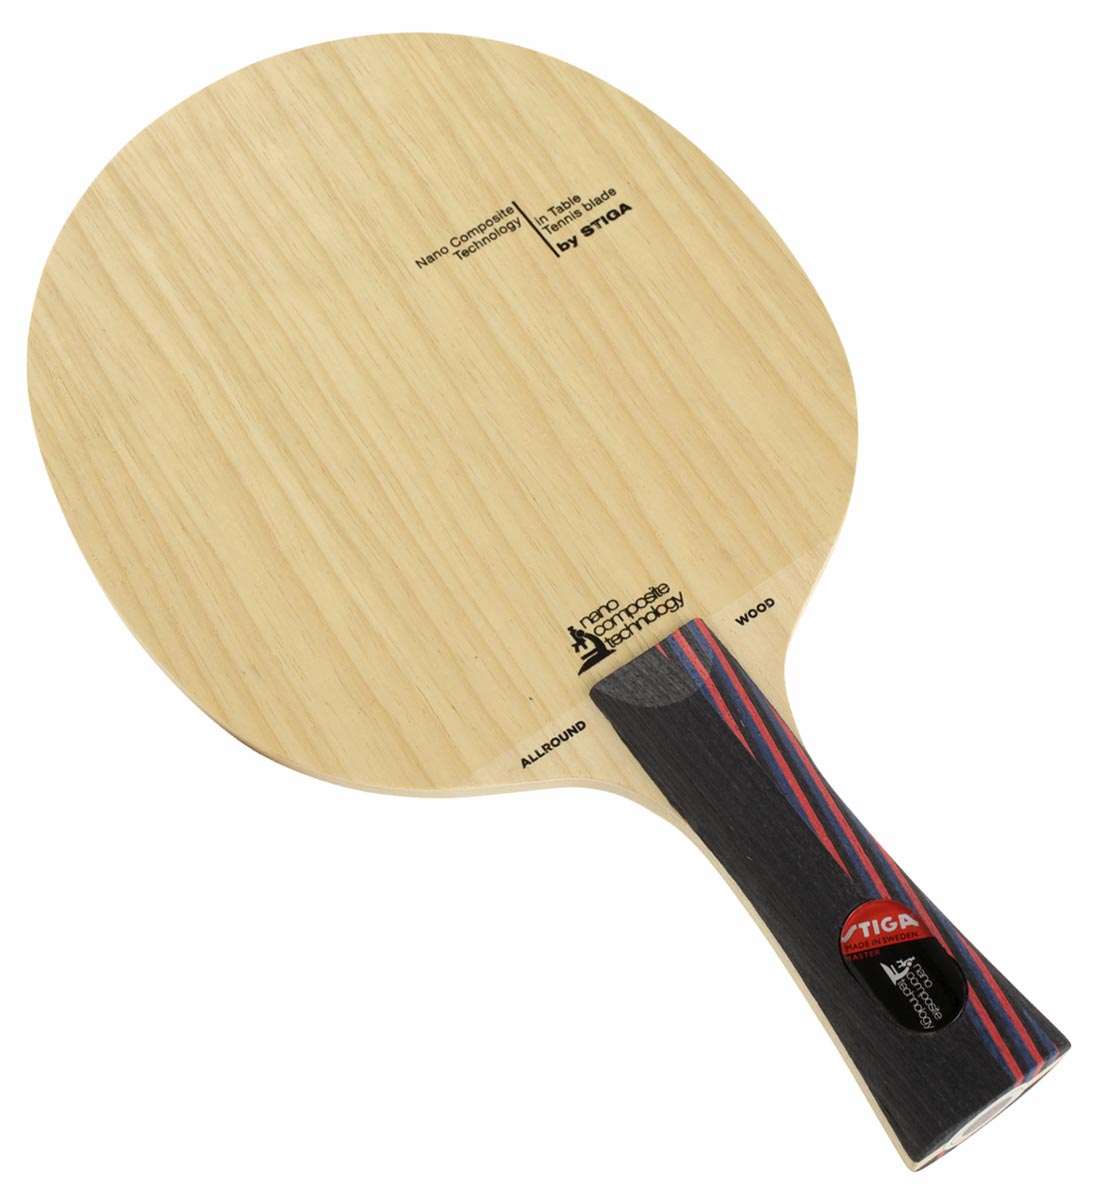 Stiga Allround Wood NCT Blade (JTTAA Chopped)